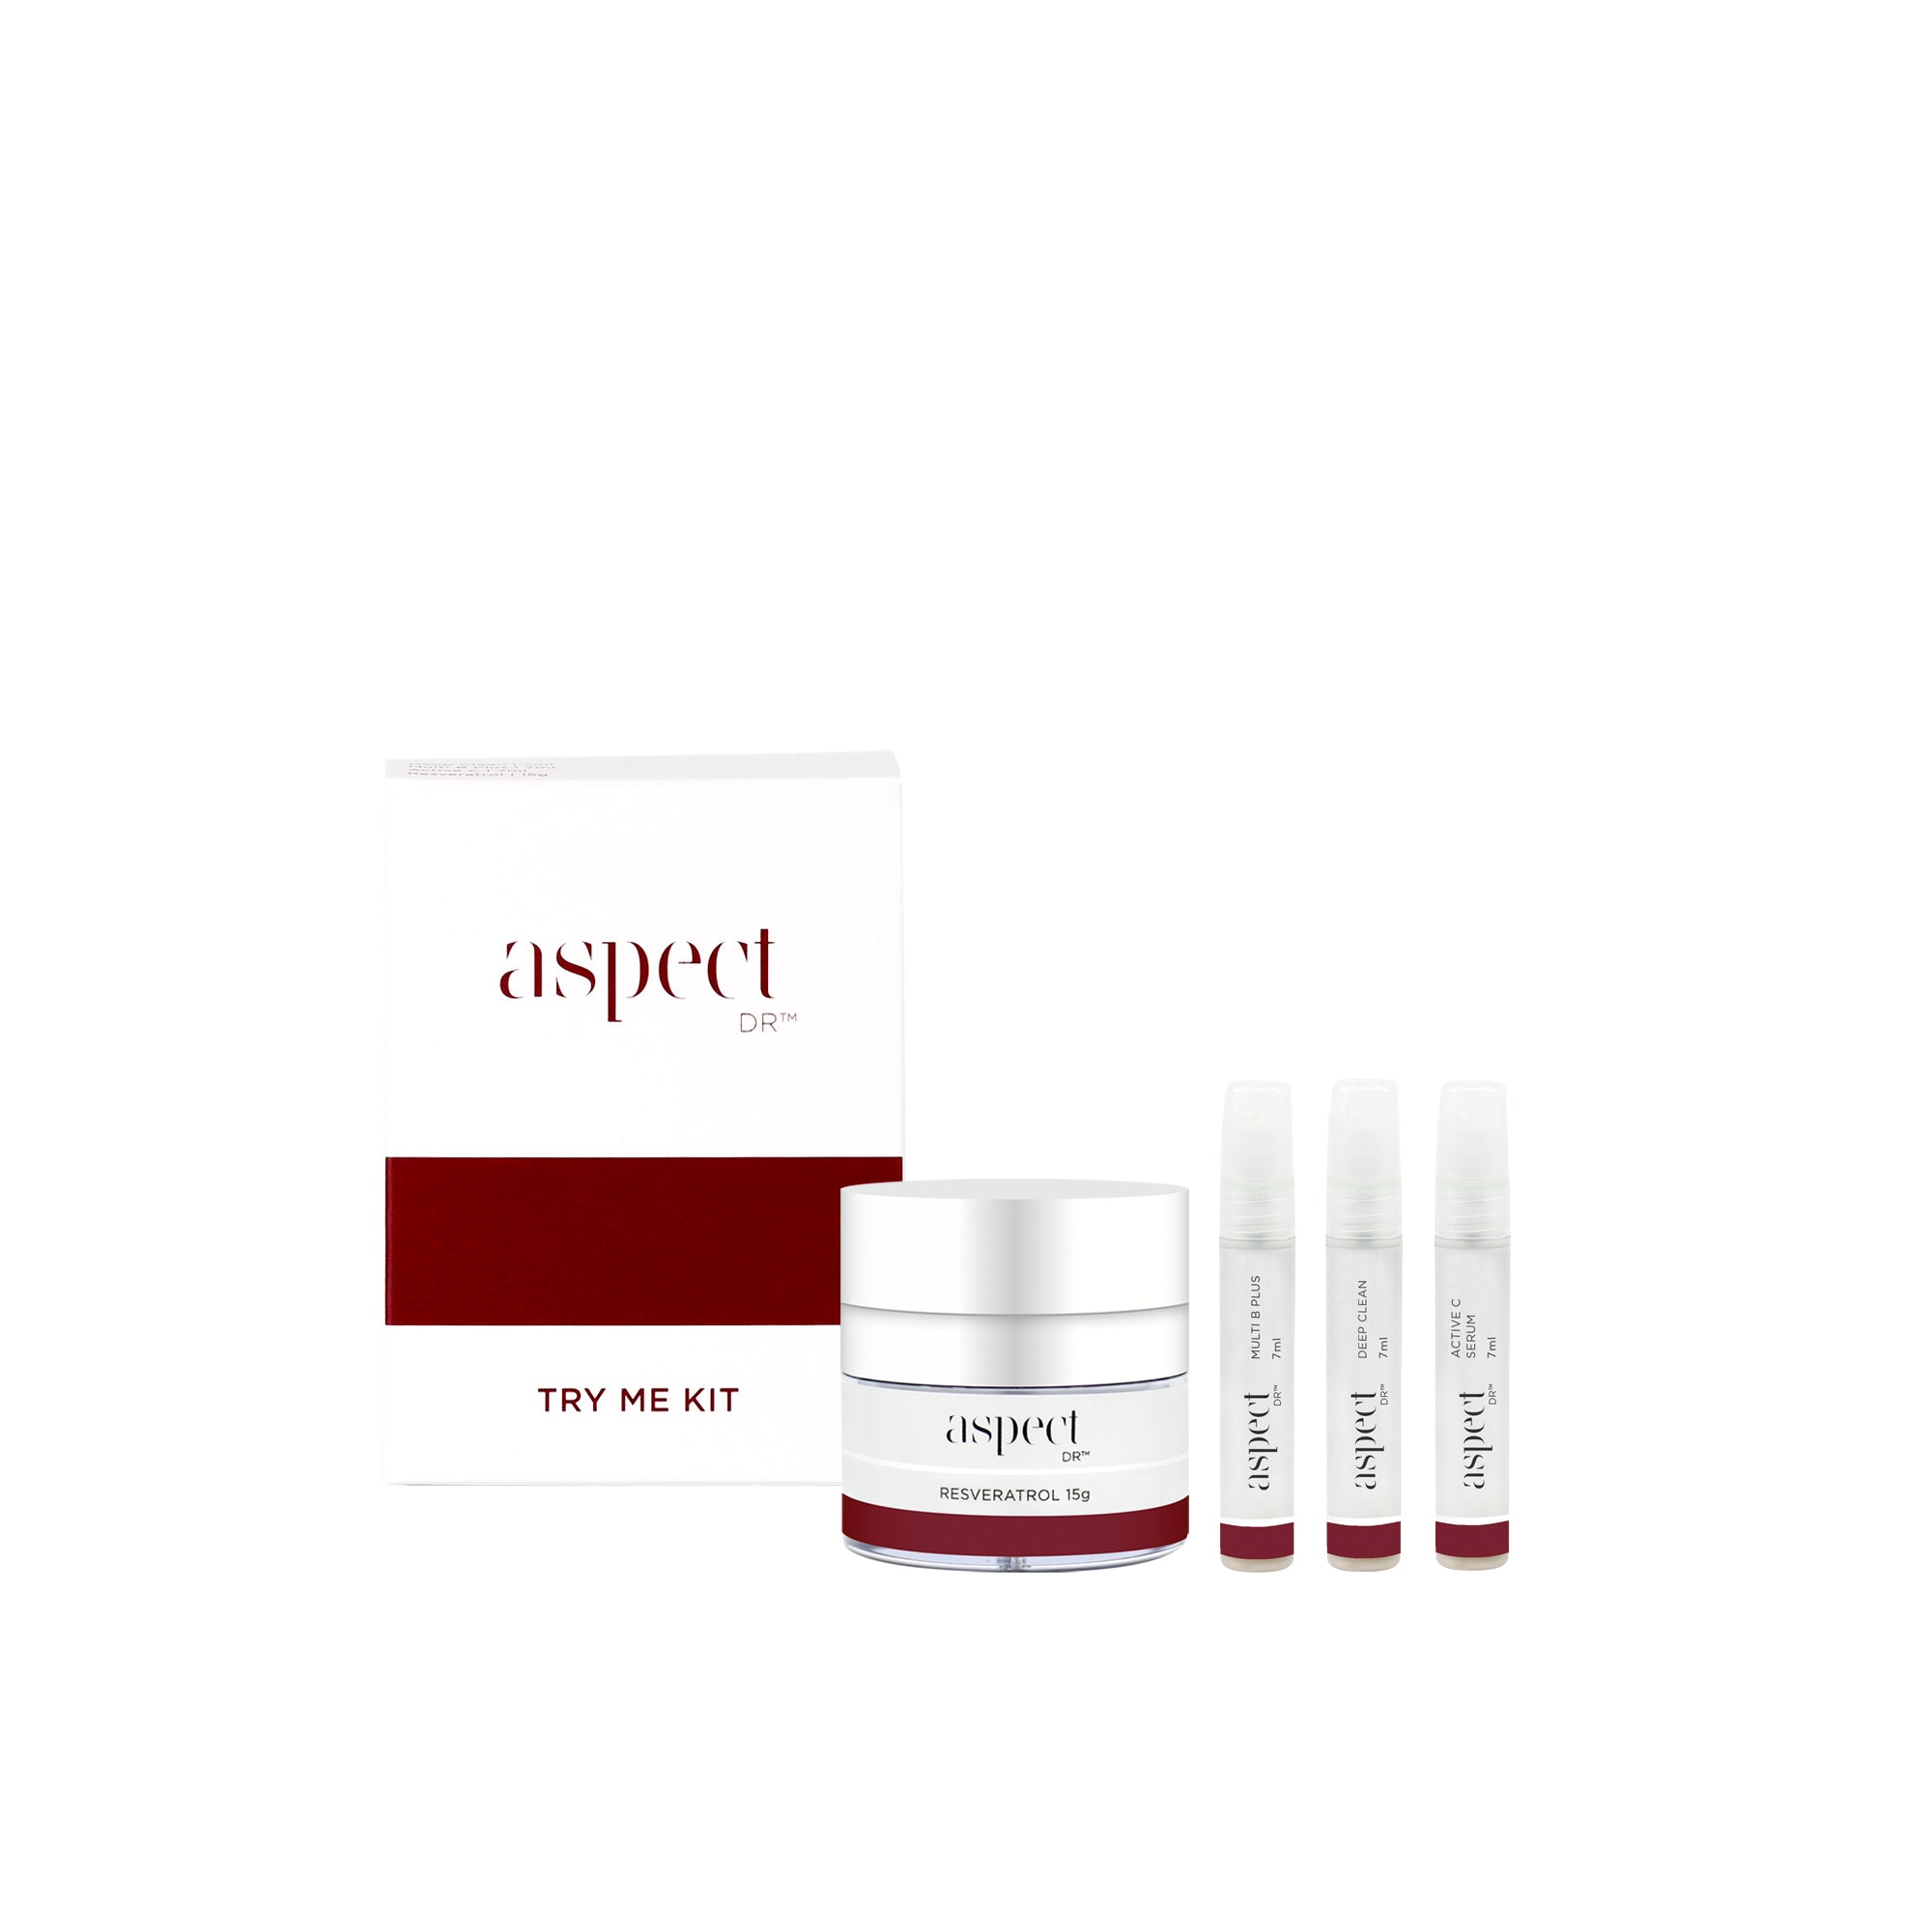 Aspect Dr Try Me Kit